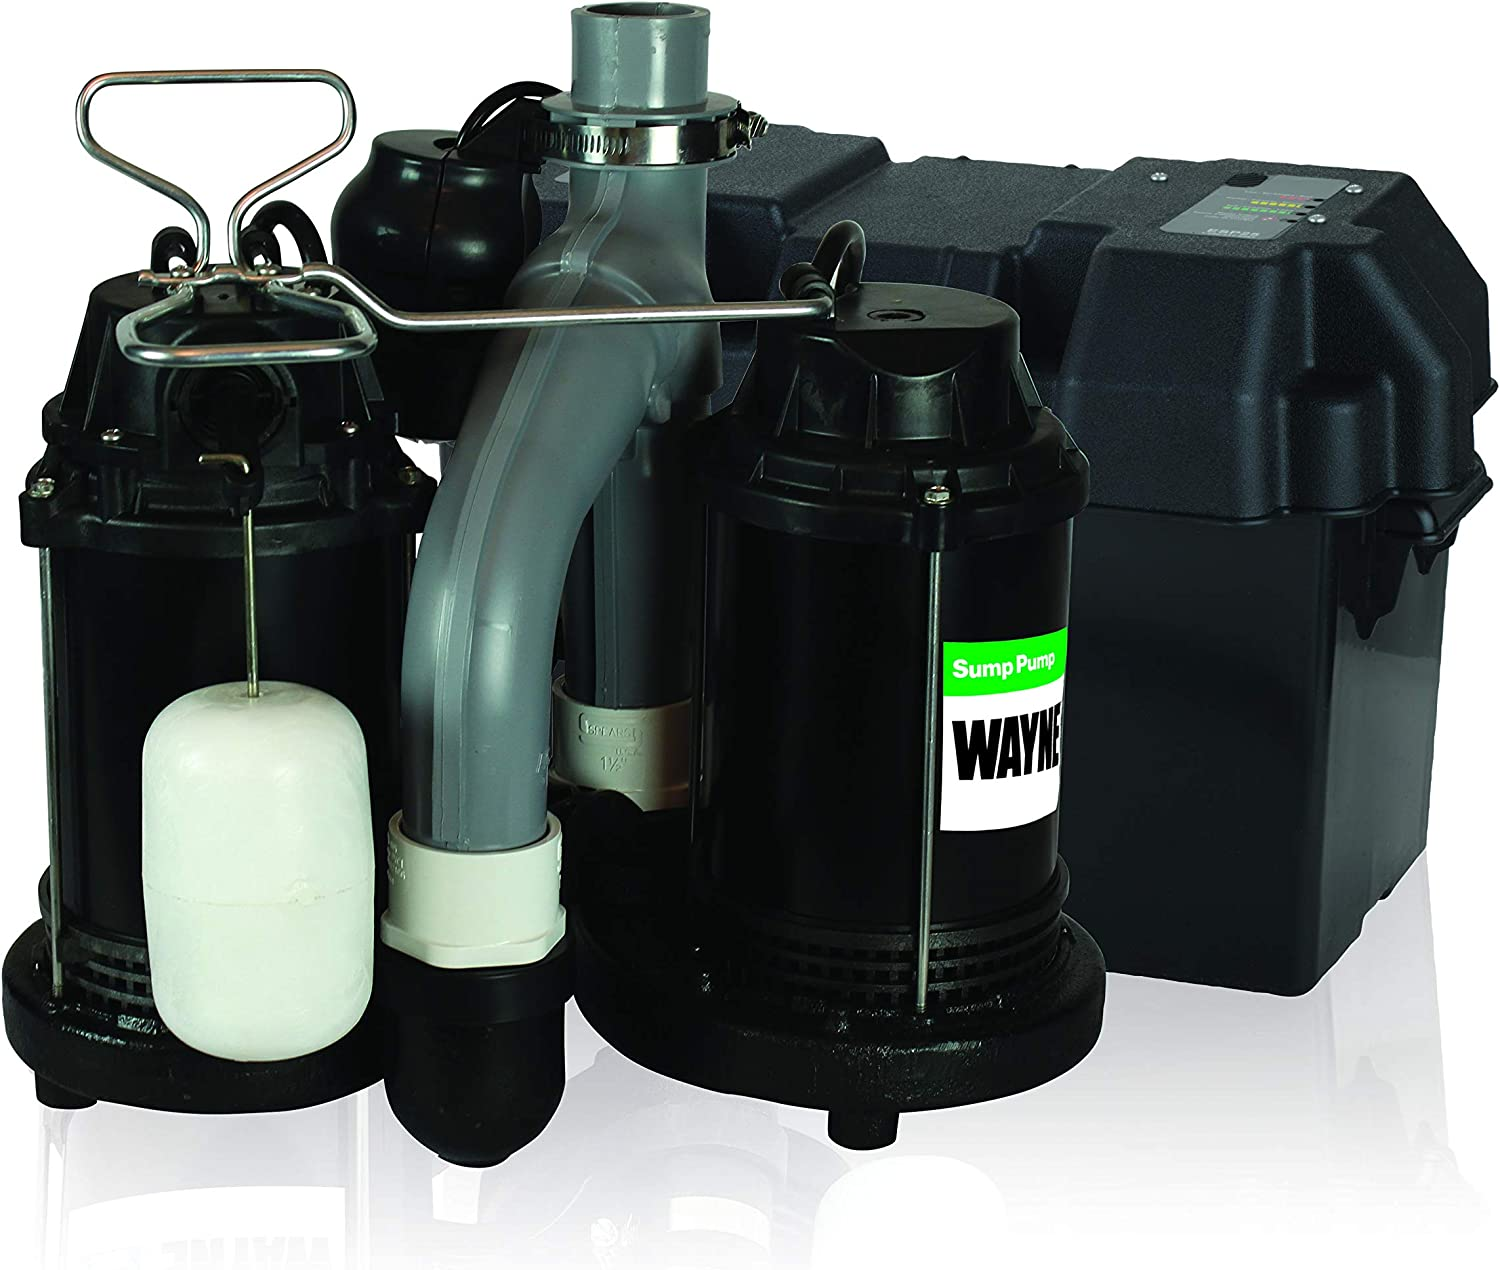 Wayne WSS30VN Upgraded Combination sump pump with Battery Back Up System